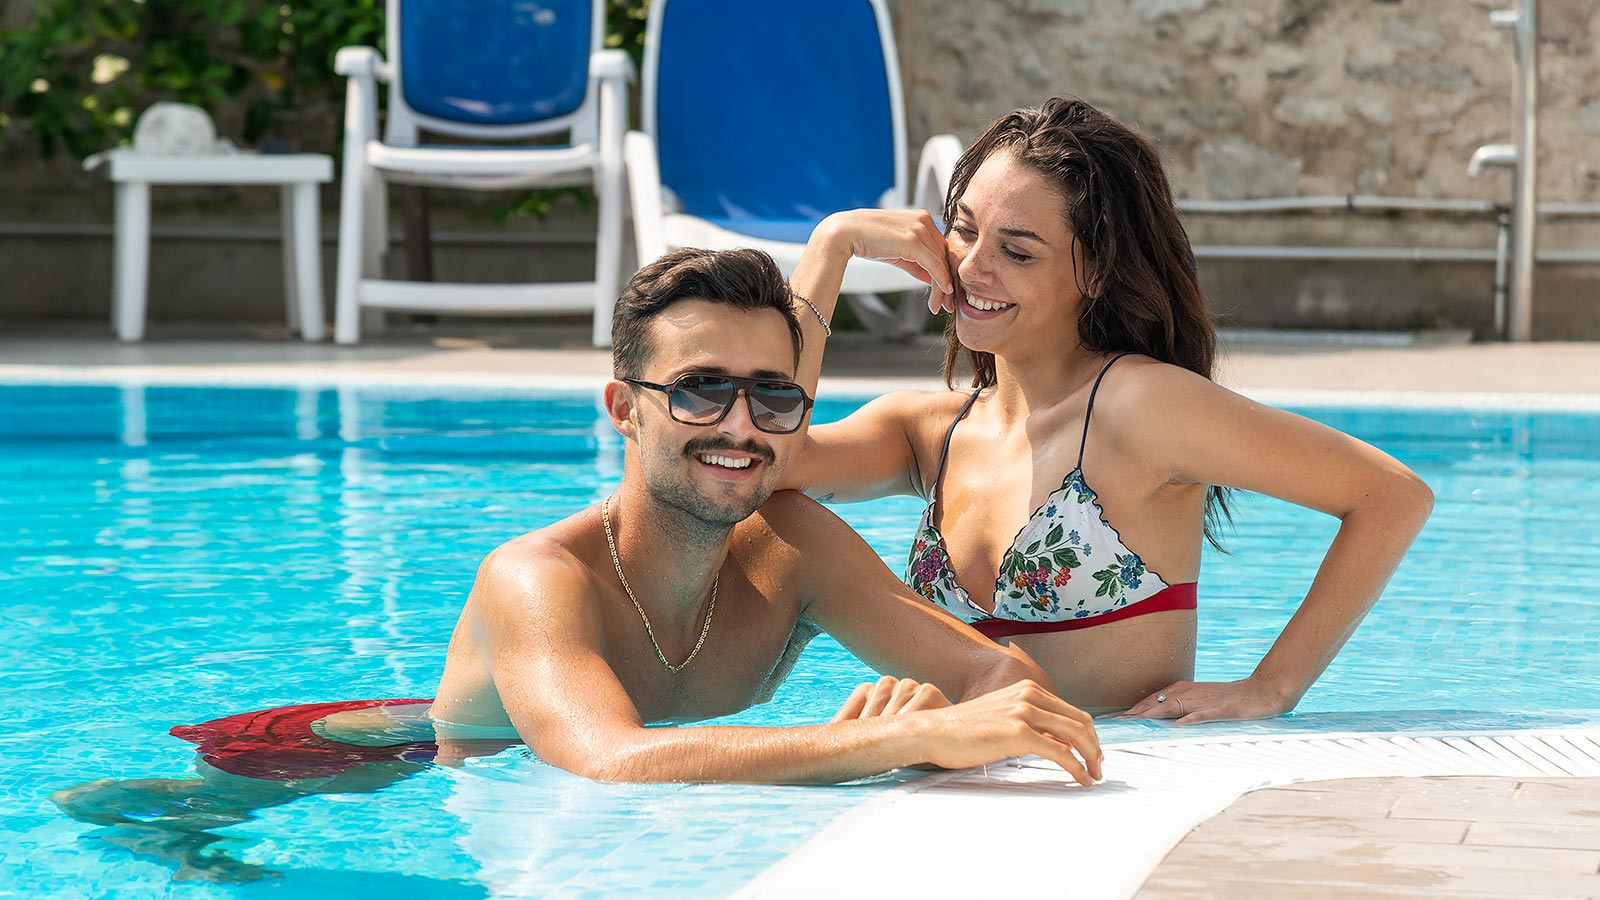 Young couple relaxing in the pool